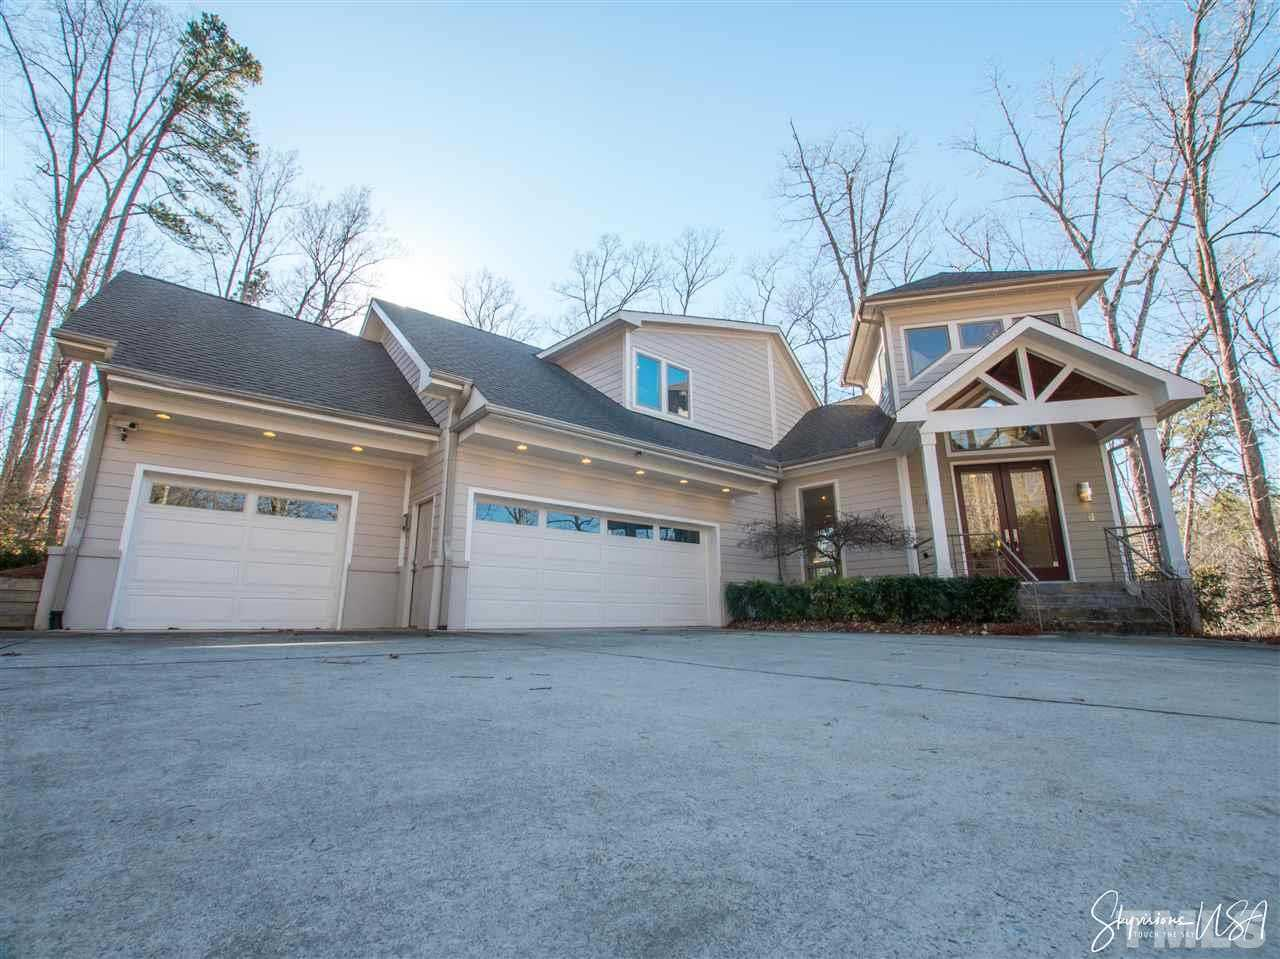 $1,199,000 - 5Br/4Ba -  for Sale in Greenwood, Chapel Hill